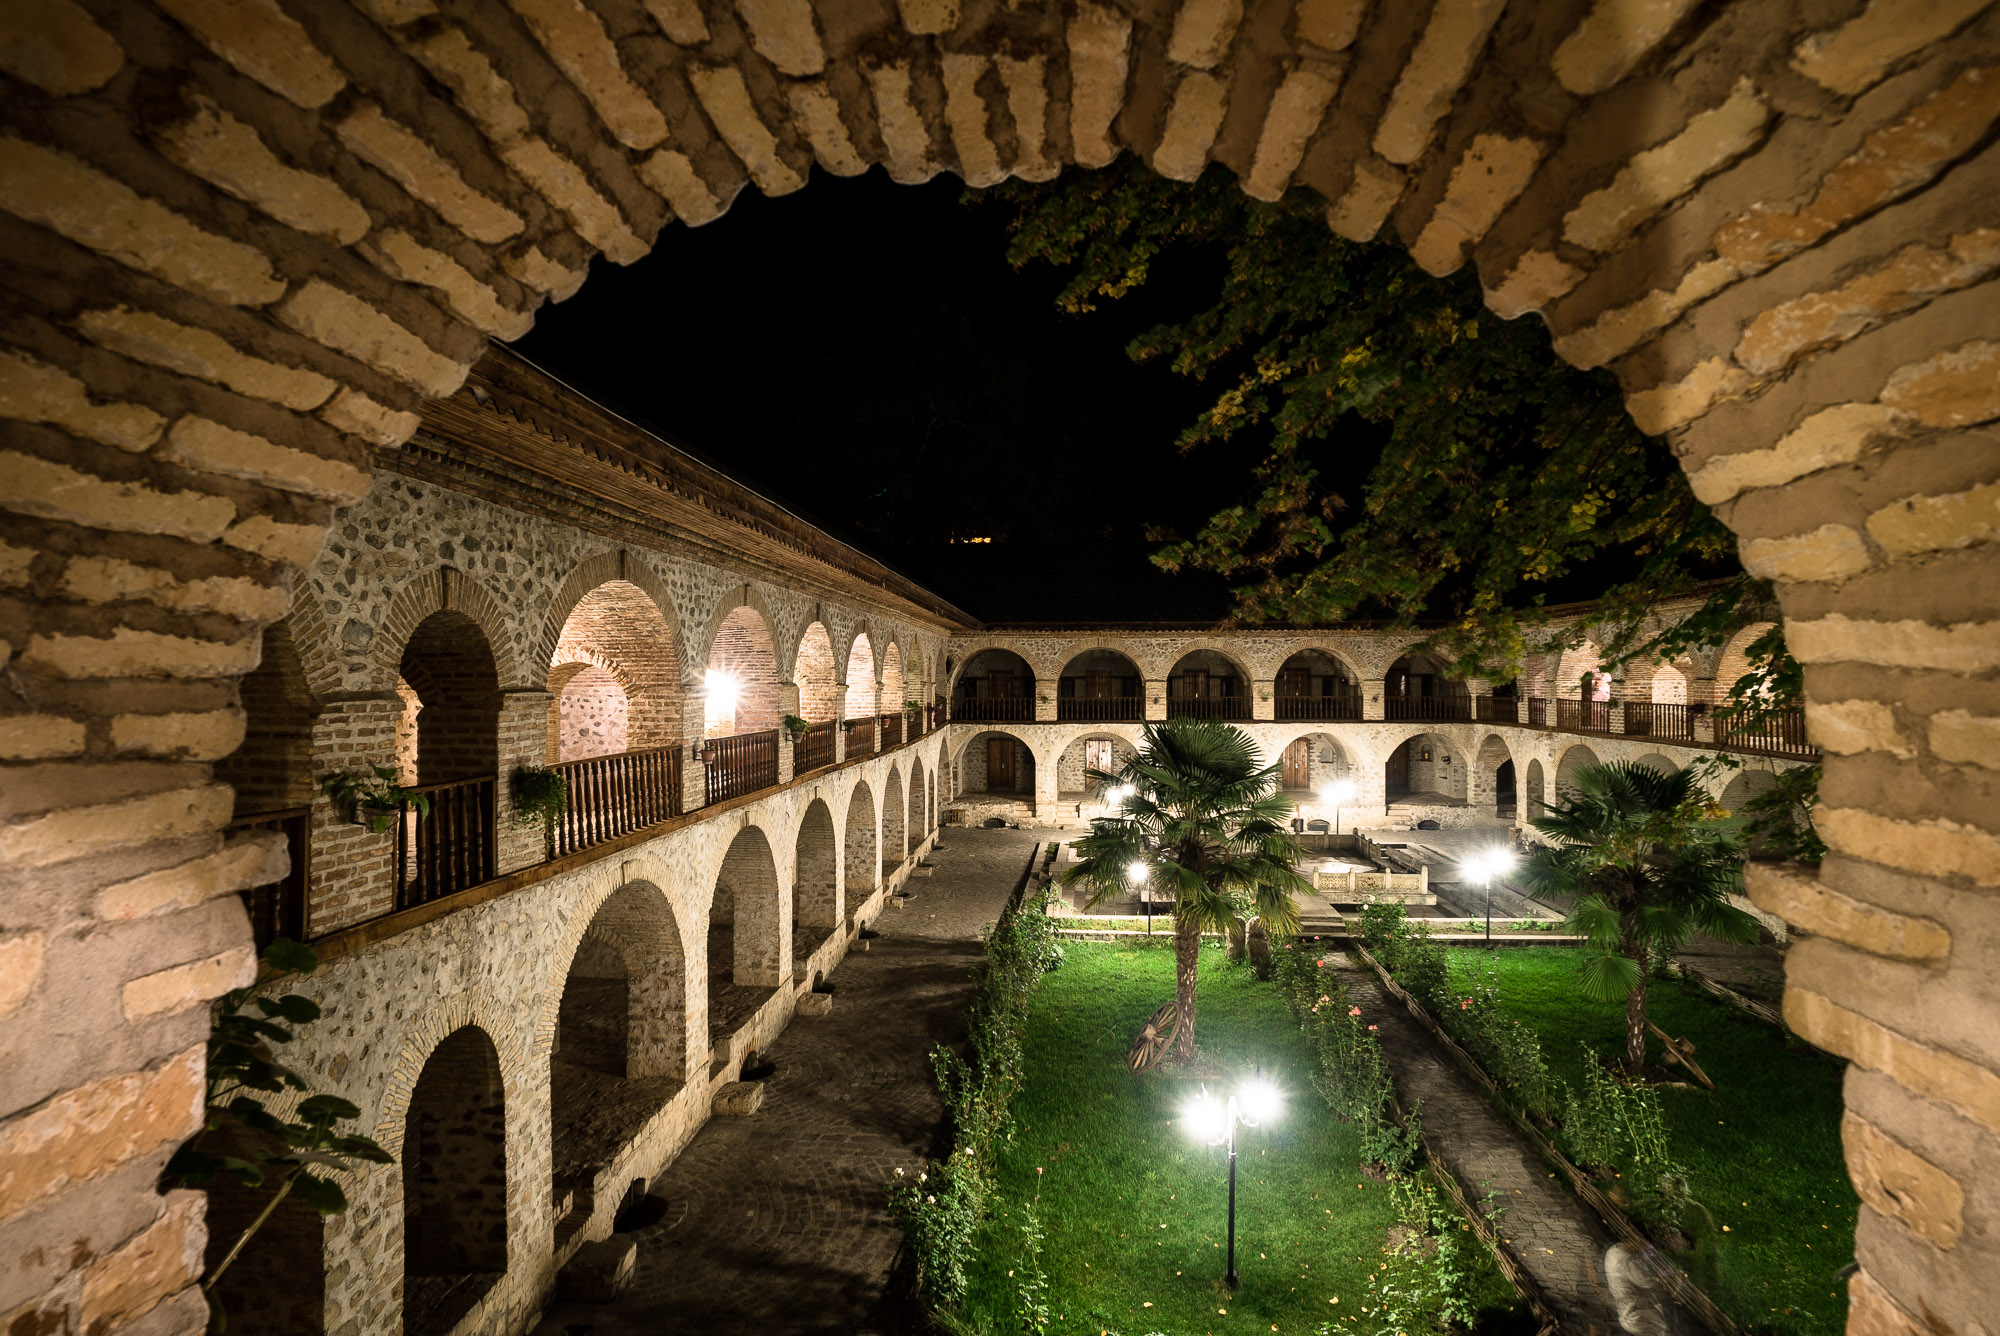 Caravanserai at night